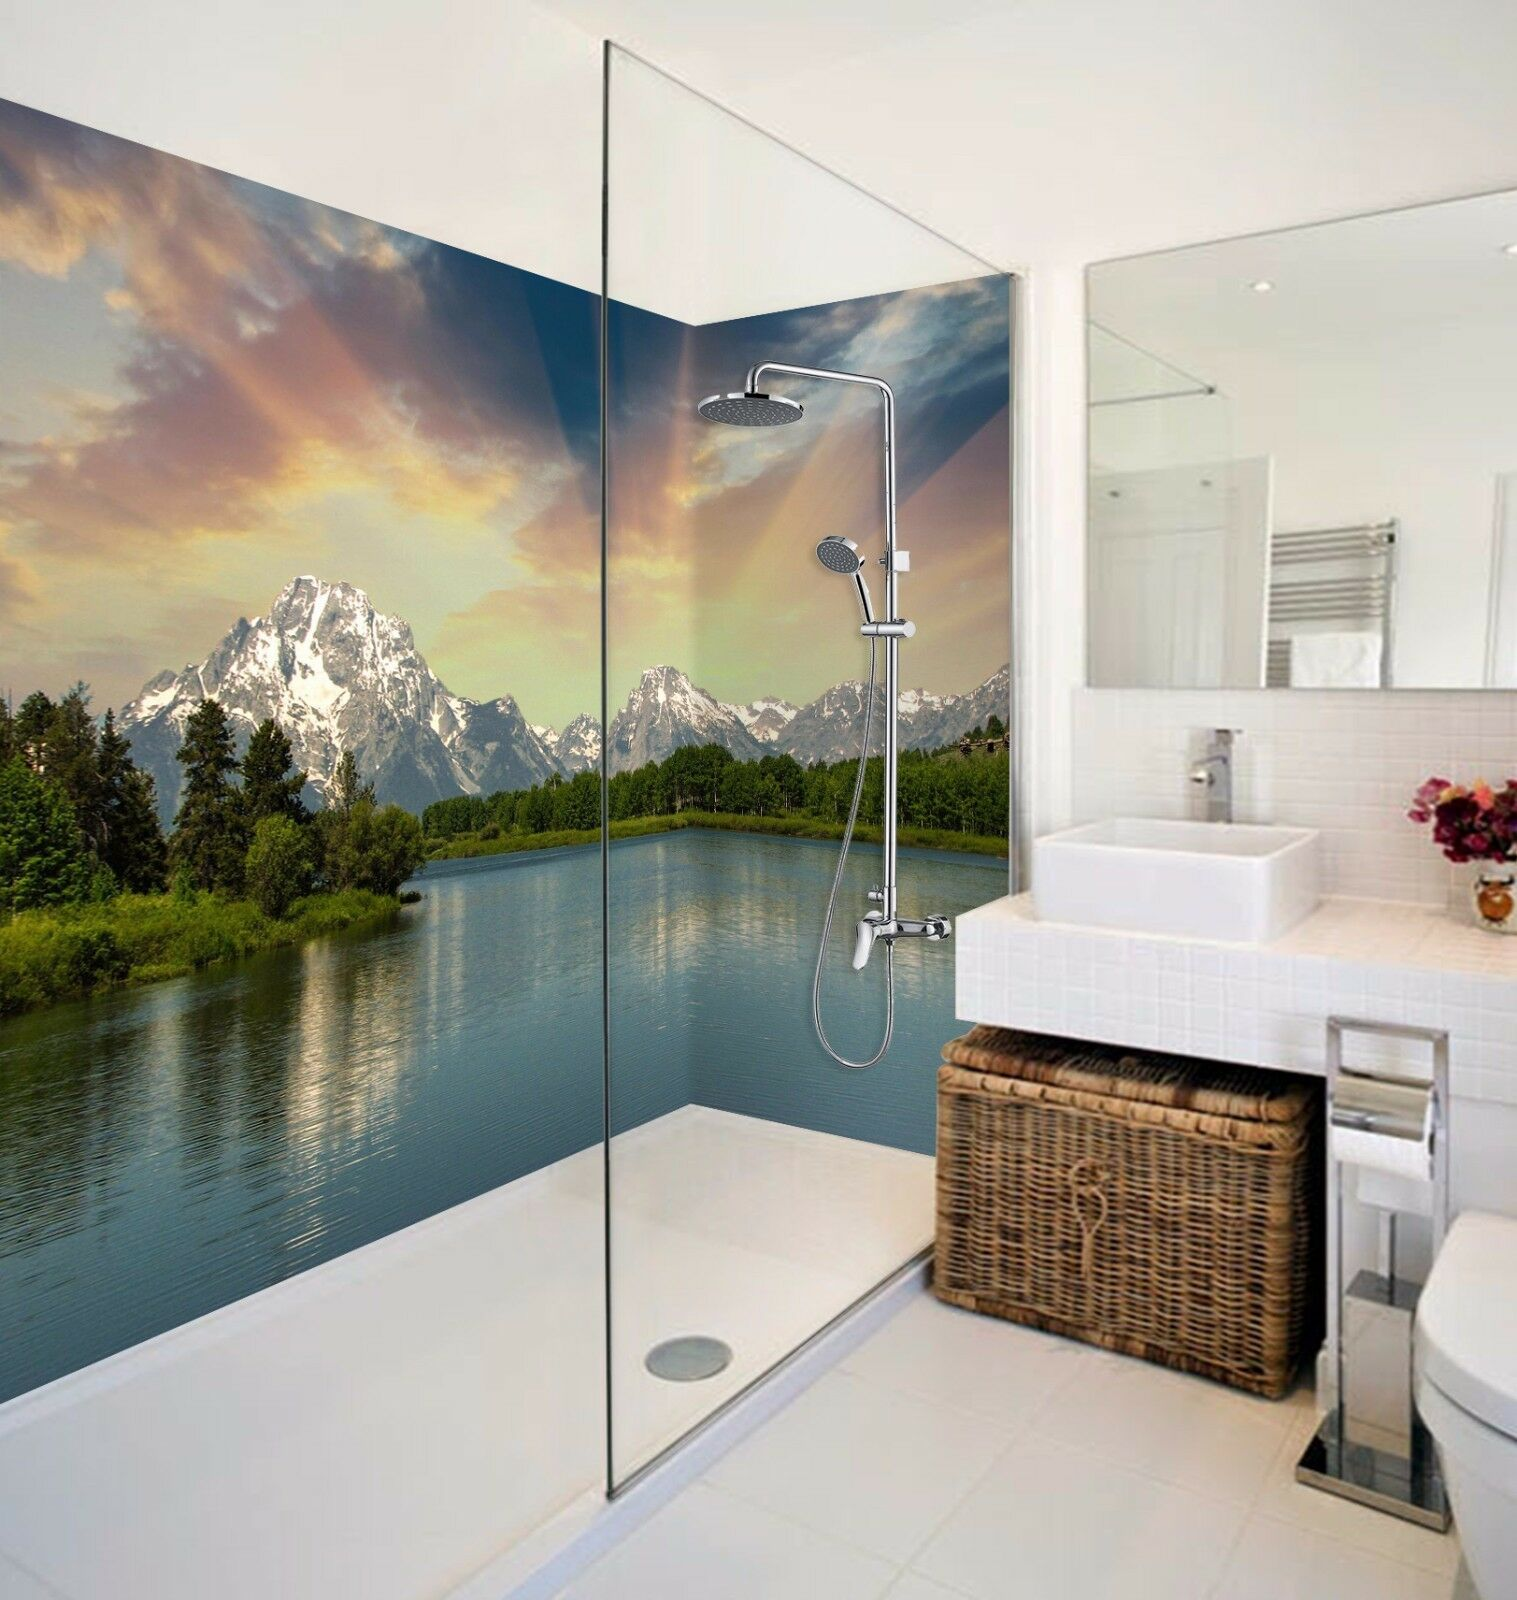 Wallpaper Murals For Bathrooms 3d Sunlight 7102 Bathroom Print Decal Wall Deco Wallpaper Au